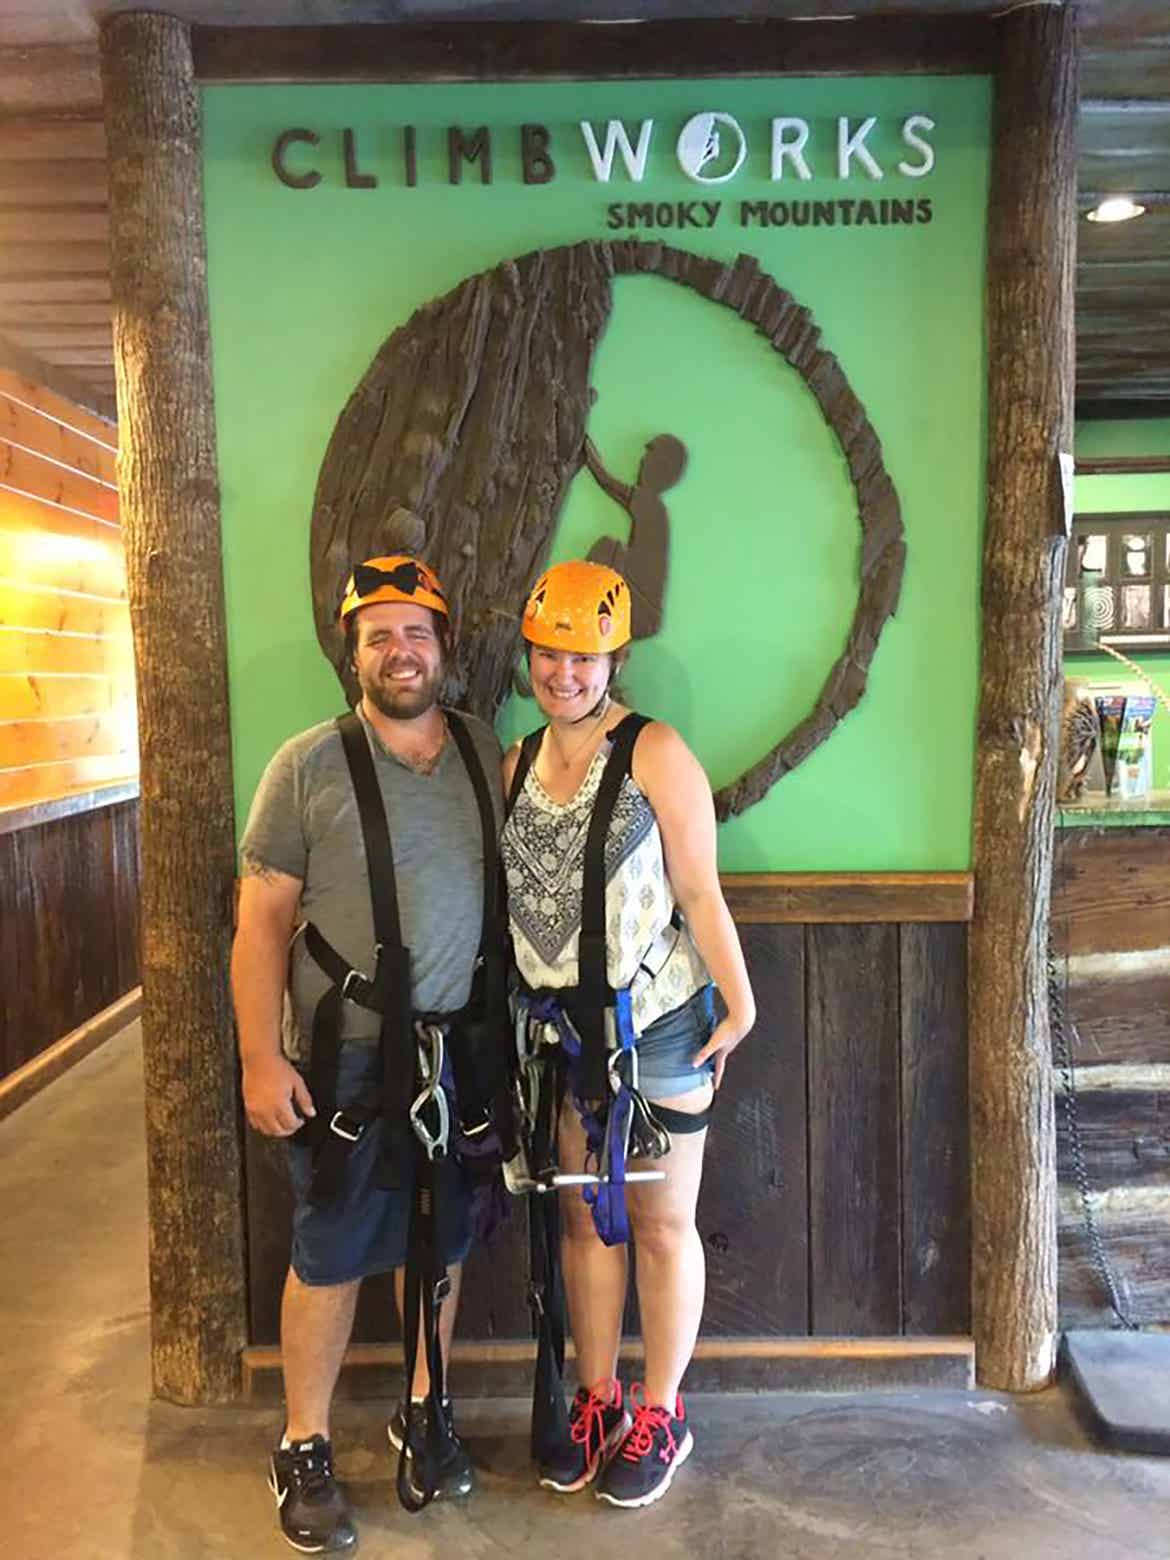 Becca and her husband wearing ziplining gear